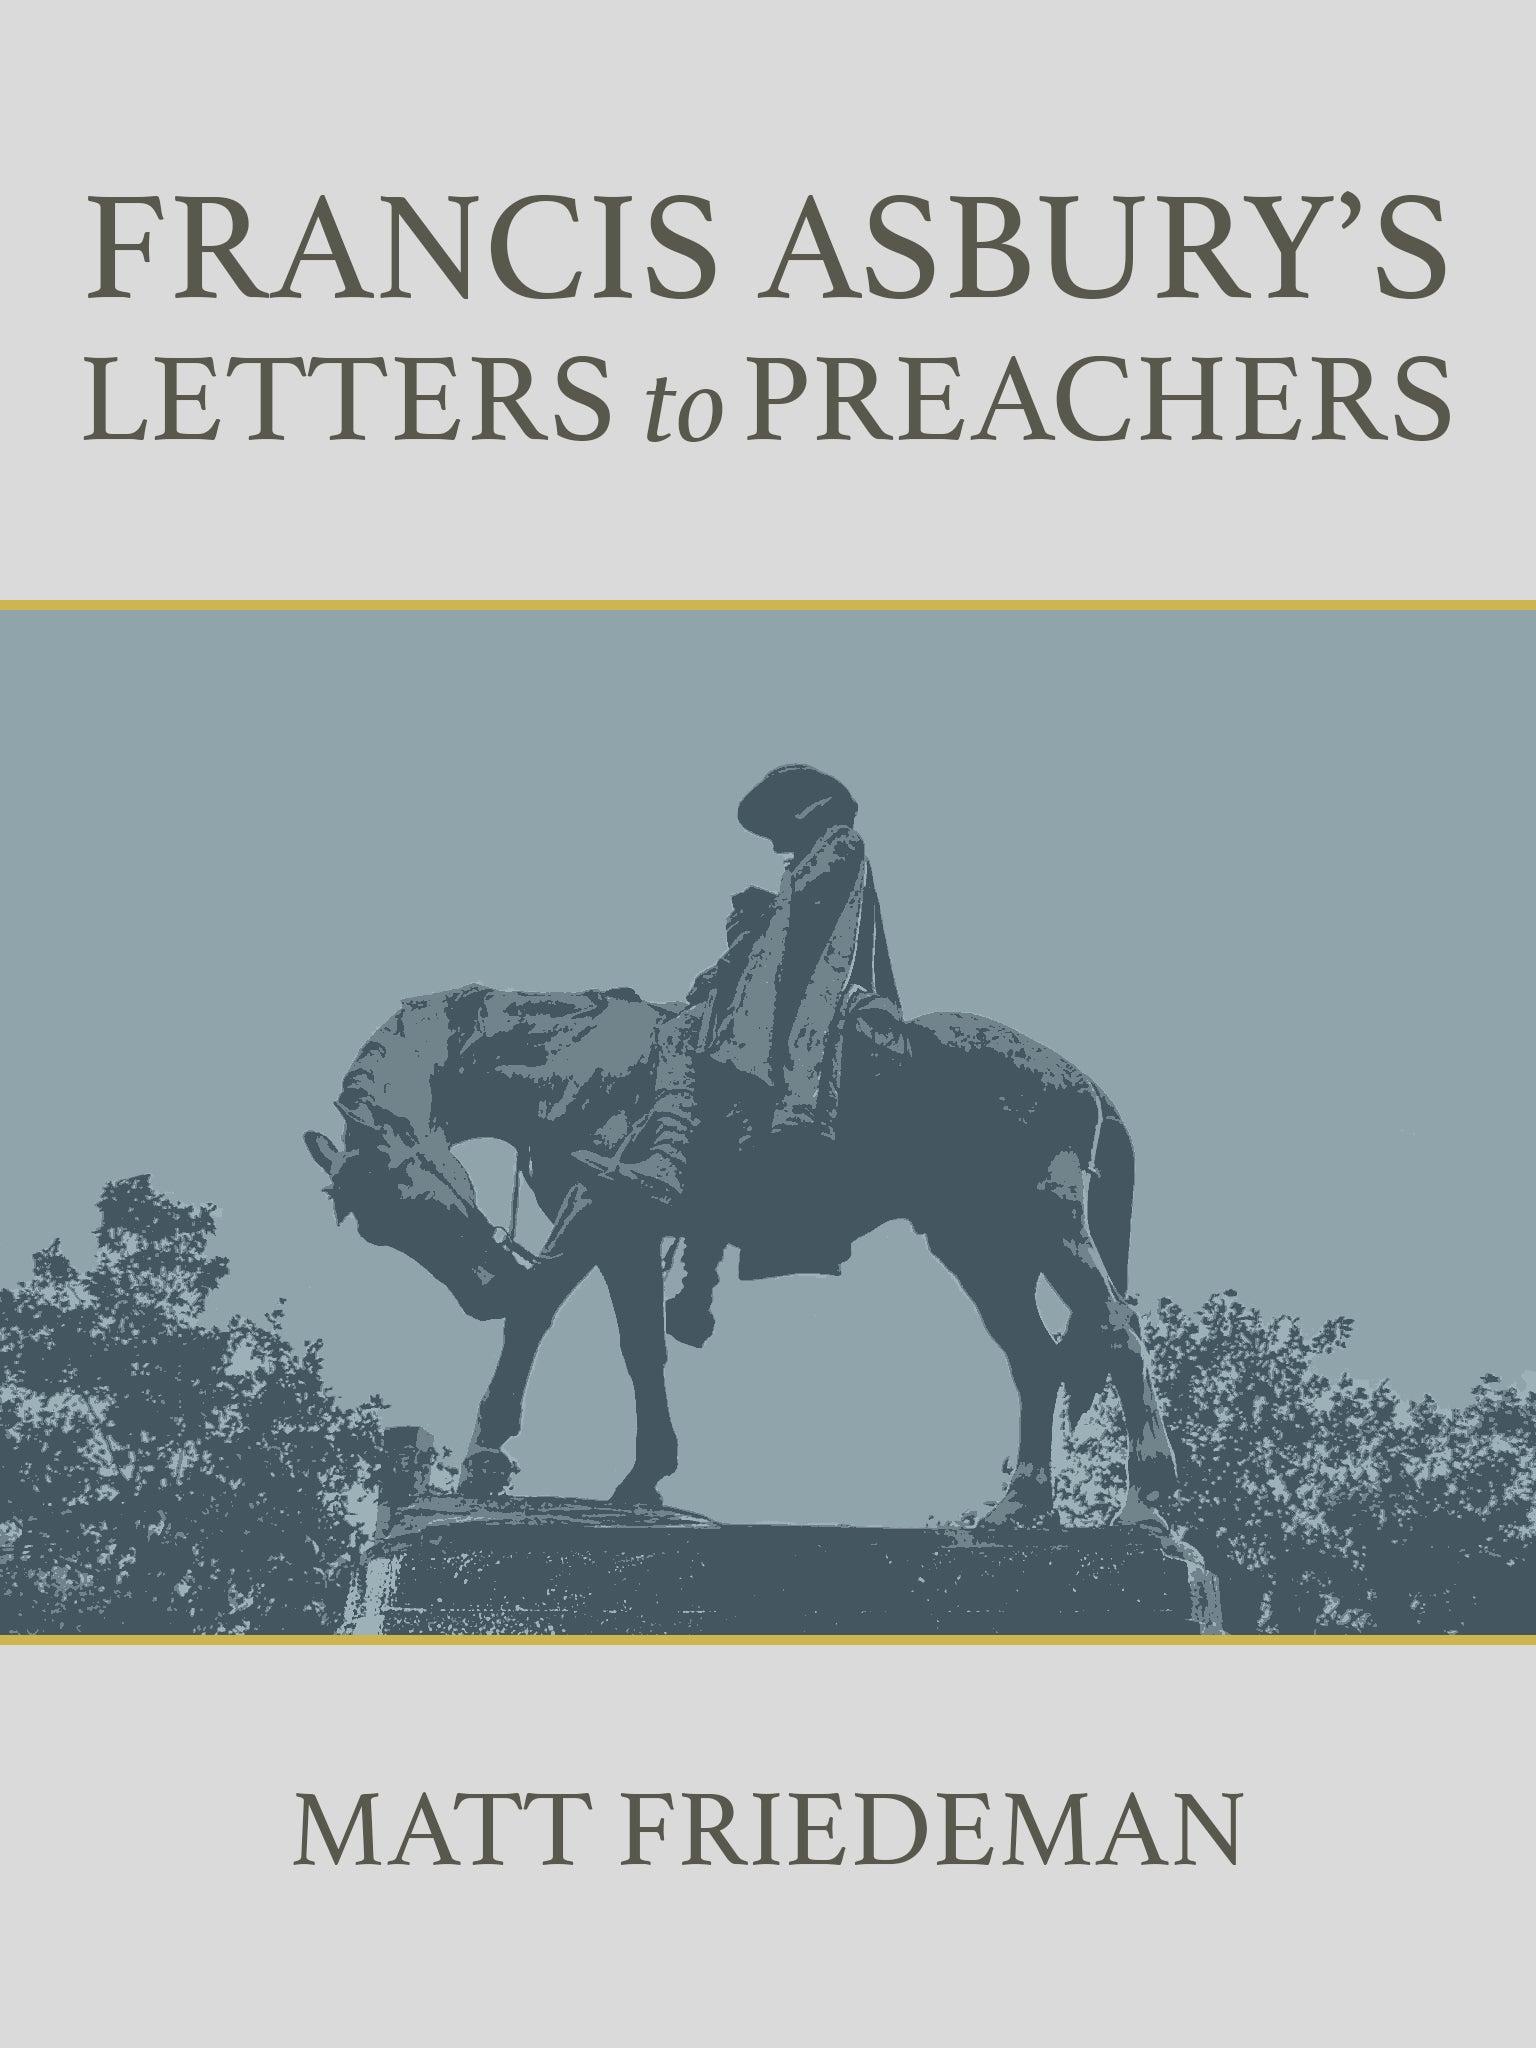 Francis Asburyu0027s Letters To Preachers